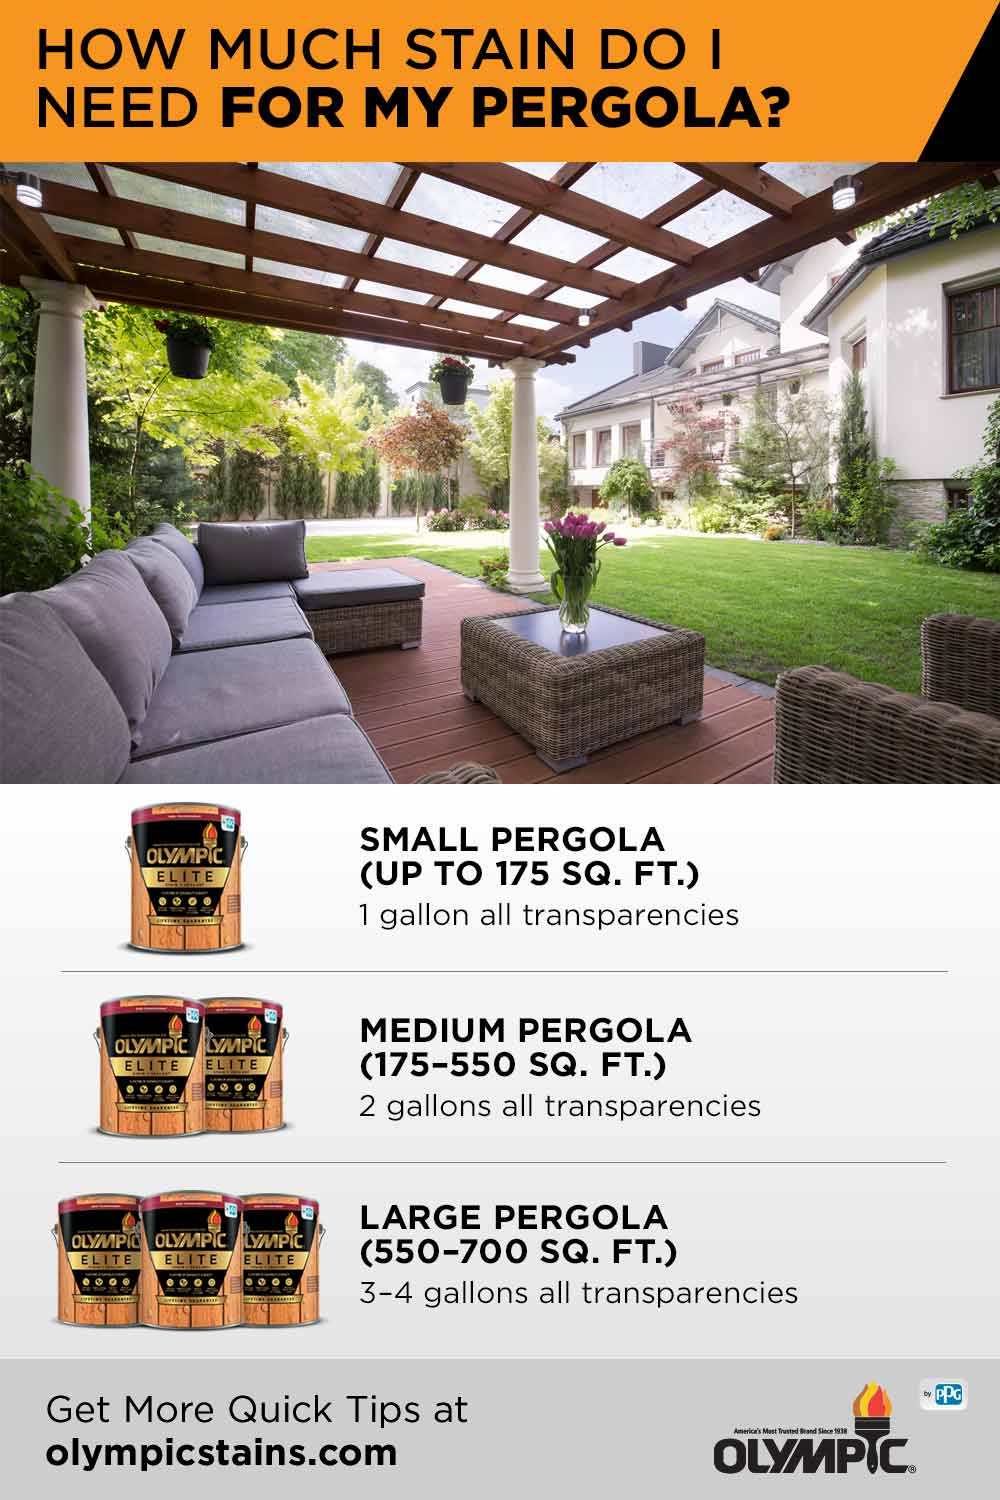 How Much Stain Do I Need For My Pergola